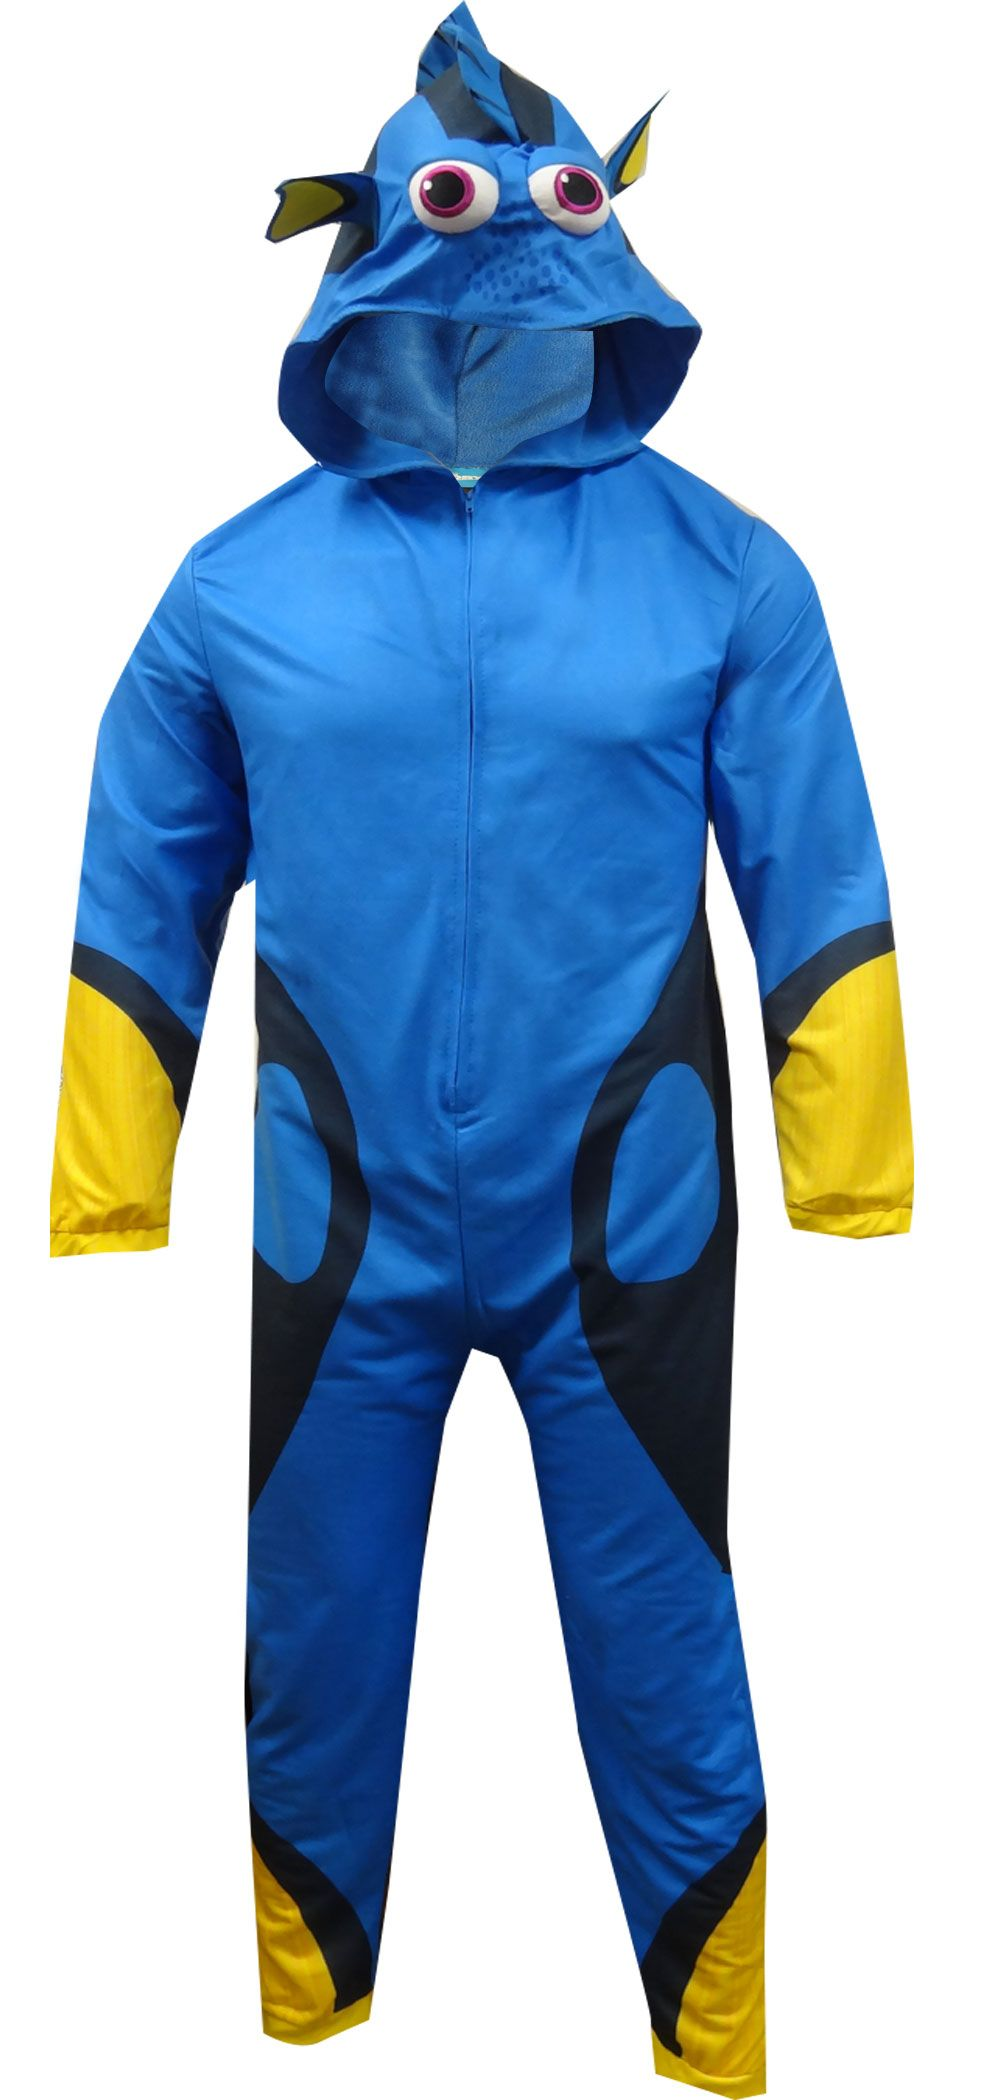 WebUndies.com Finding Dory Onesie Union Suit Pajama 78a60424a